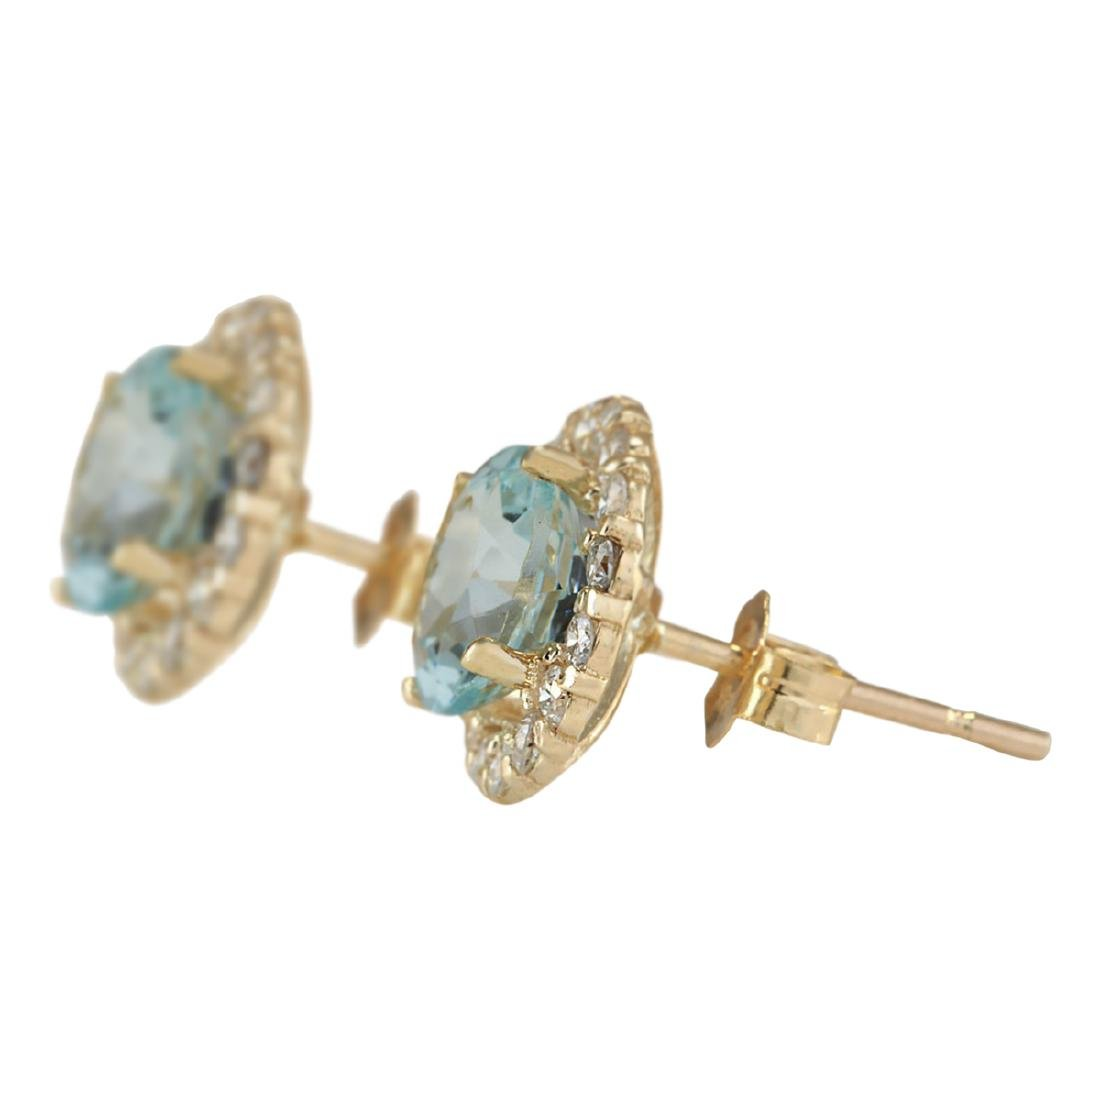 3.65 CTW Natural Aquamarine And Diamond Earrings 18K - 2